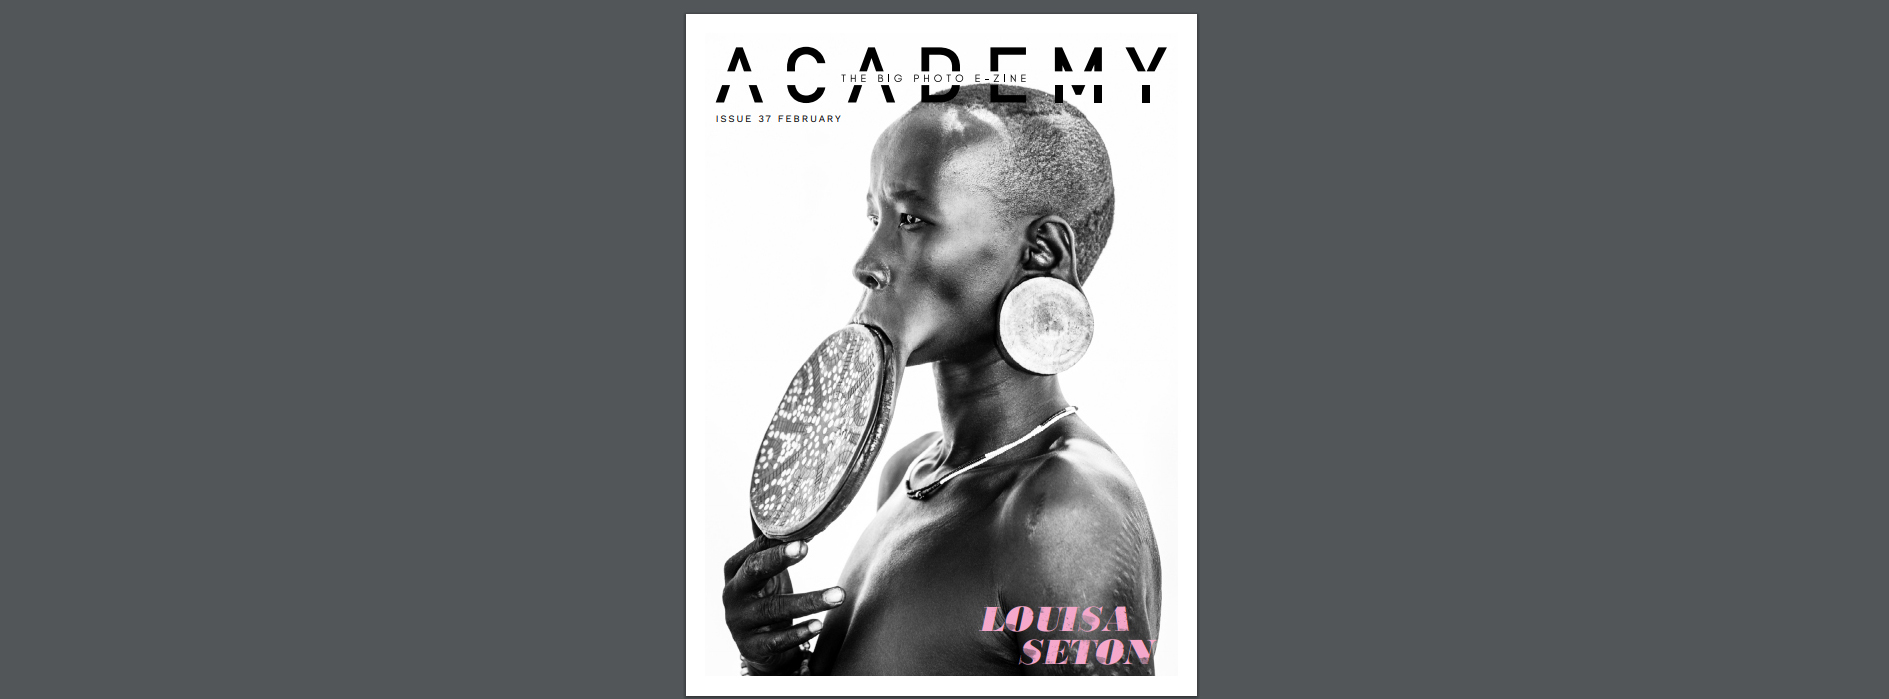 Academy photography magazine front cover